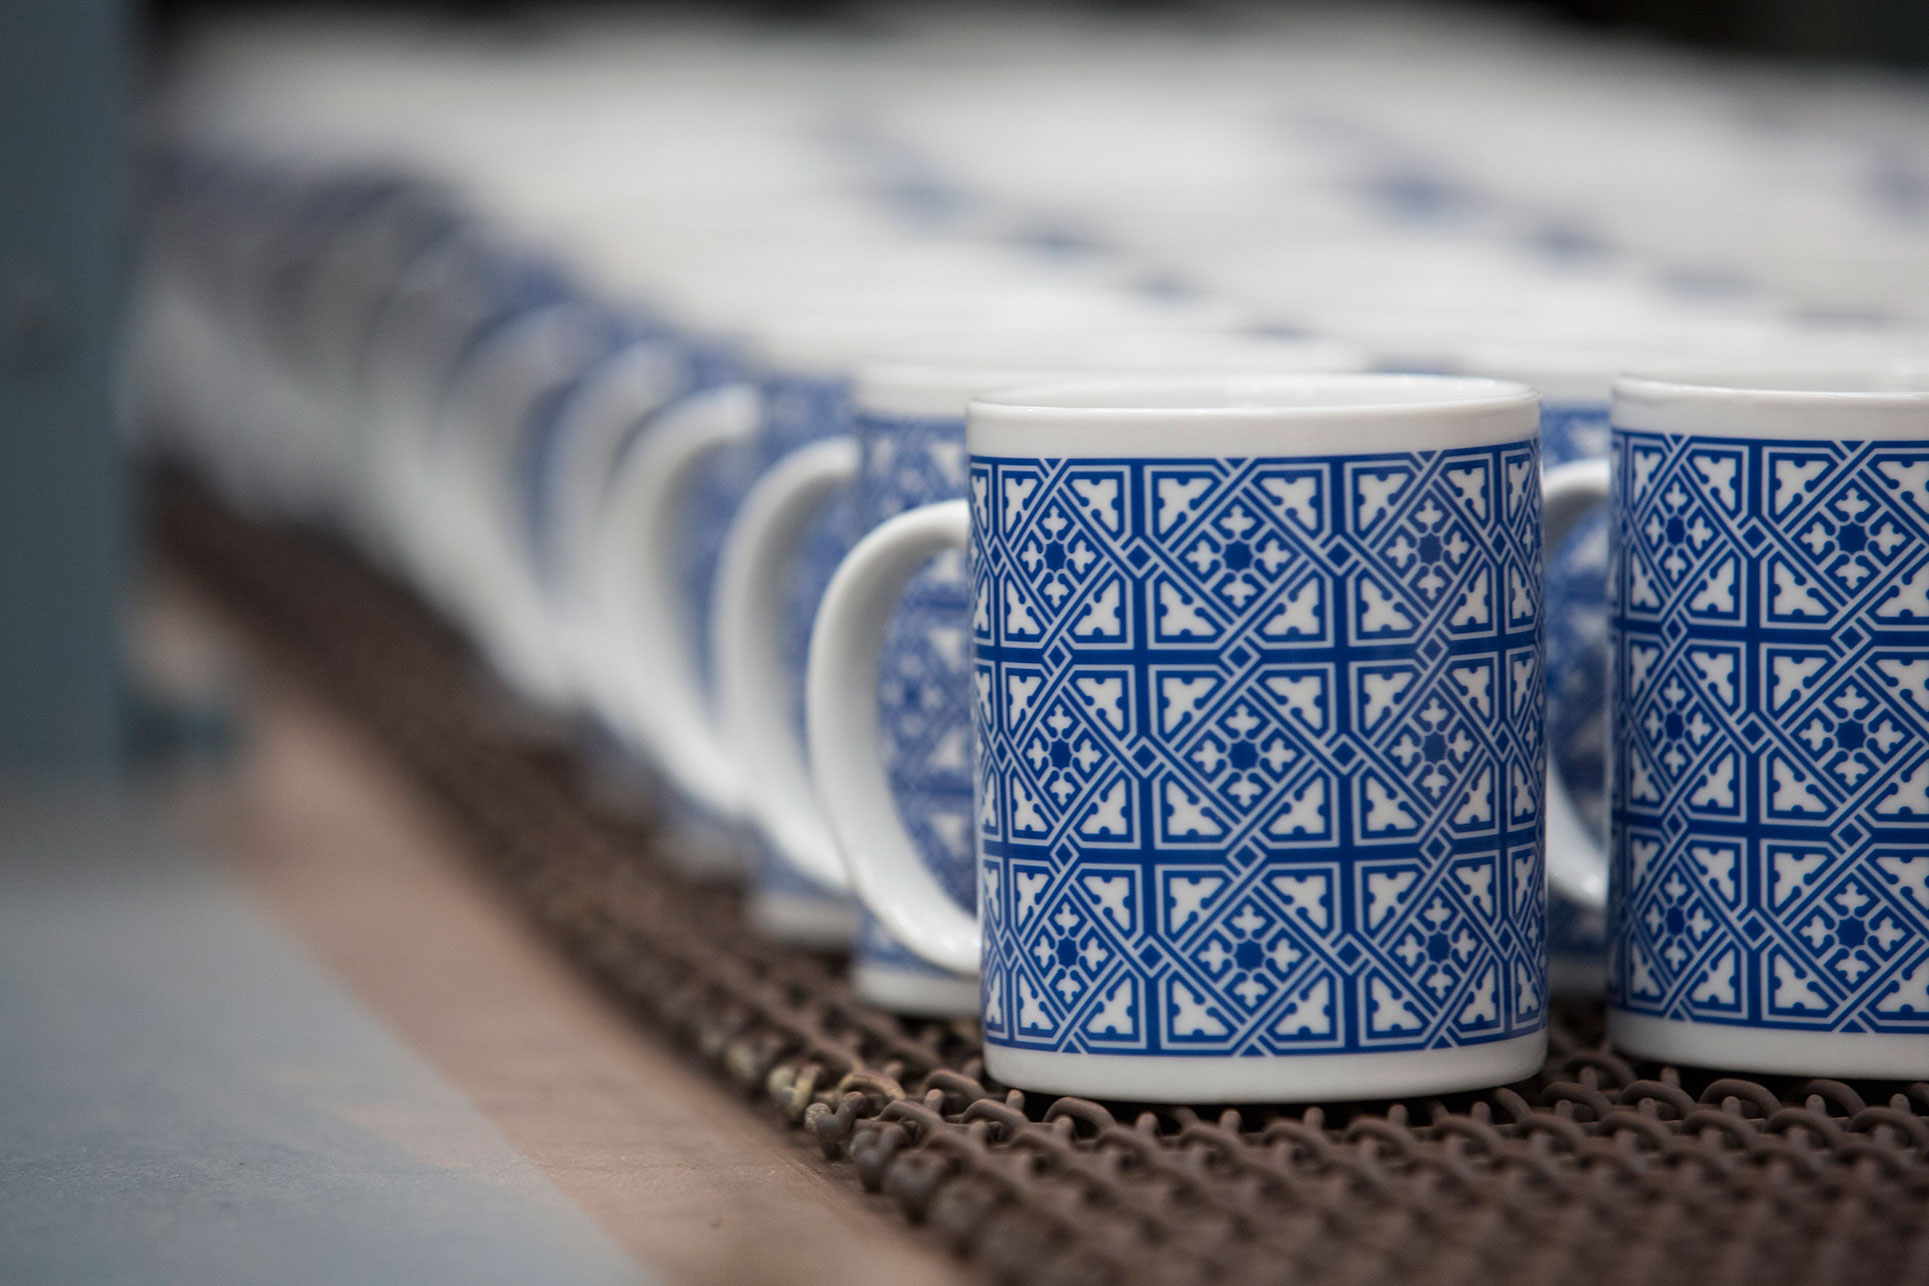 Personalized porcelain mugs firing in a continuous furnace